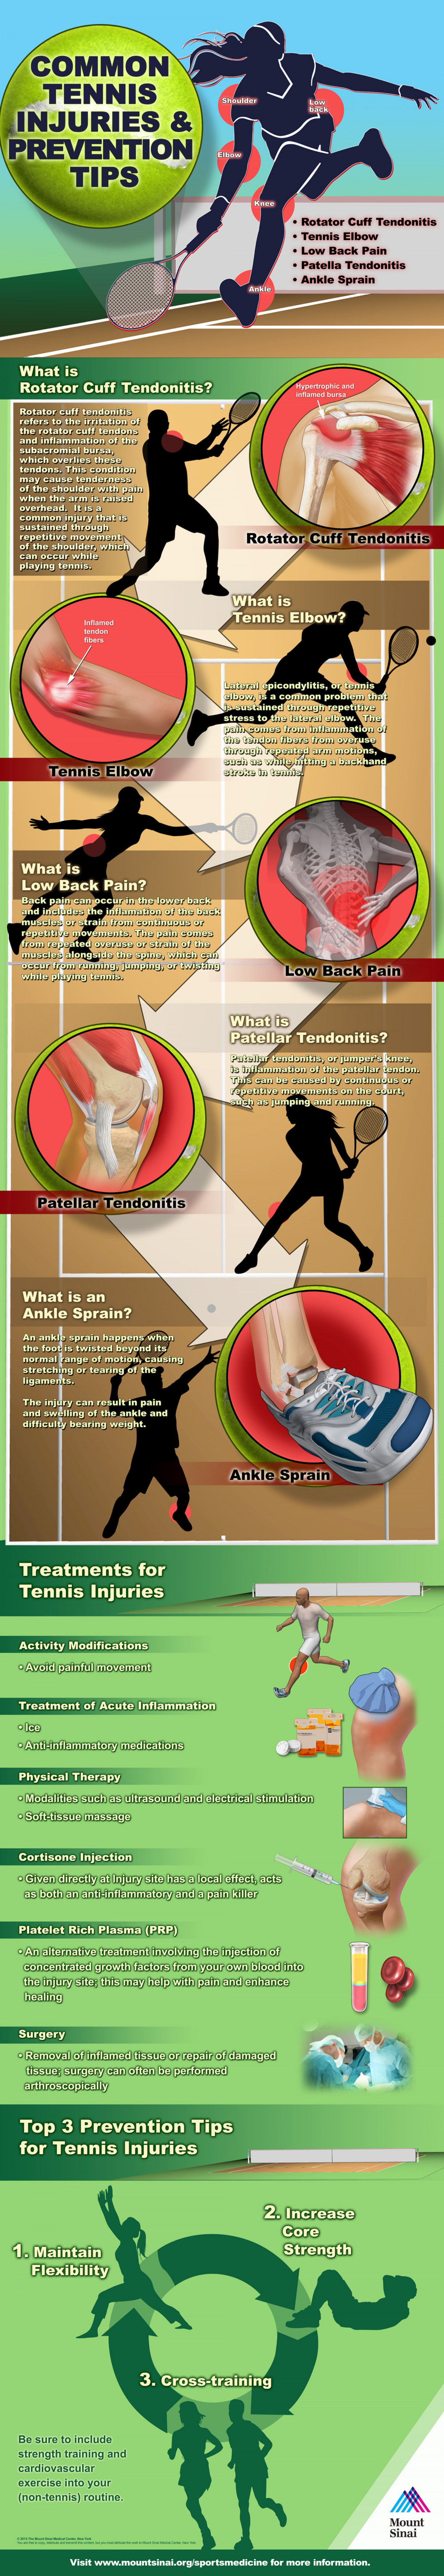 Common Tennis Injuries and Prevention Tips Infographic